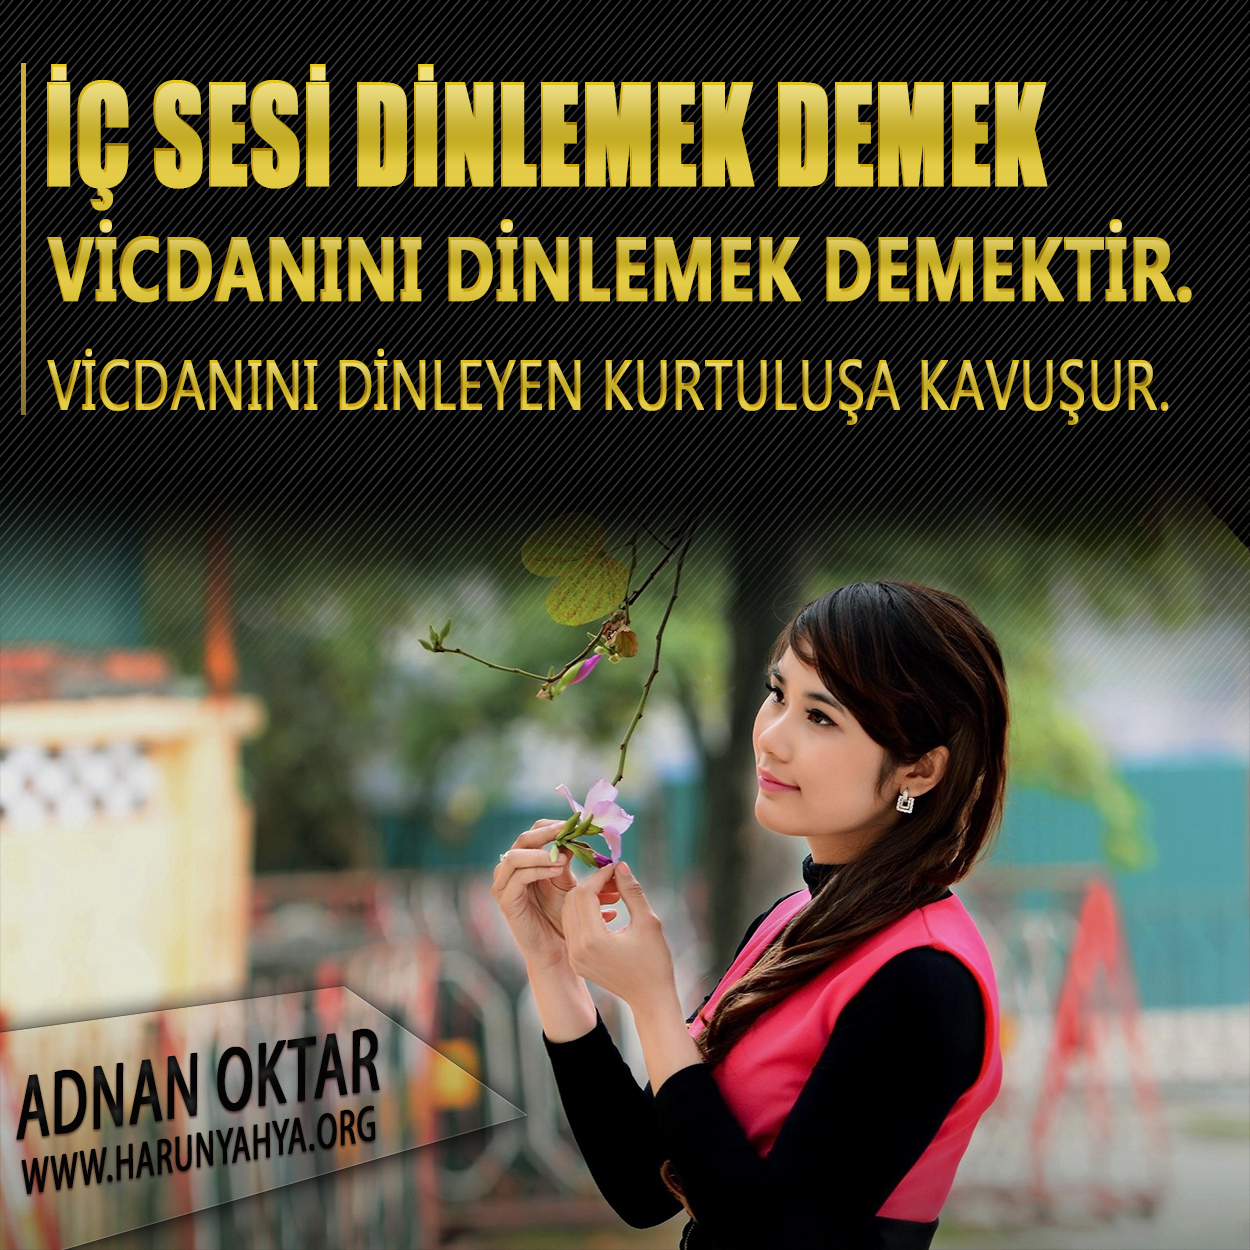 """<table style=""""width: 100%;""""><tr><td style=""""vertical-align: middle;"""">İç sesi dinlemek demek vicdanını dinlemek demektir. Vicdanını dinleyen kurtuluşa kavuşur.</td><td style=""""max-width: 70px;vertical-align: middle;""""> <a href=""""/downloadquote.php?filename=1503135880265.jpg""""><img class=""""hoversaturate"""" height=""""20px"""" src=""""/assets/images/download-iconu.png"""" style=""""width: 48px; height: 48px;"""" title=""""Resmi İndir""""/></a></td></tr></table>"""